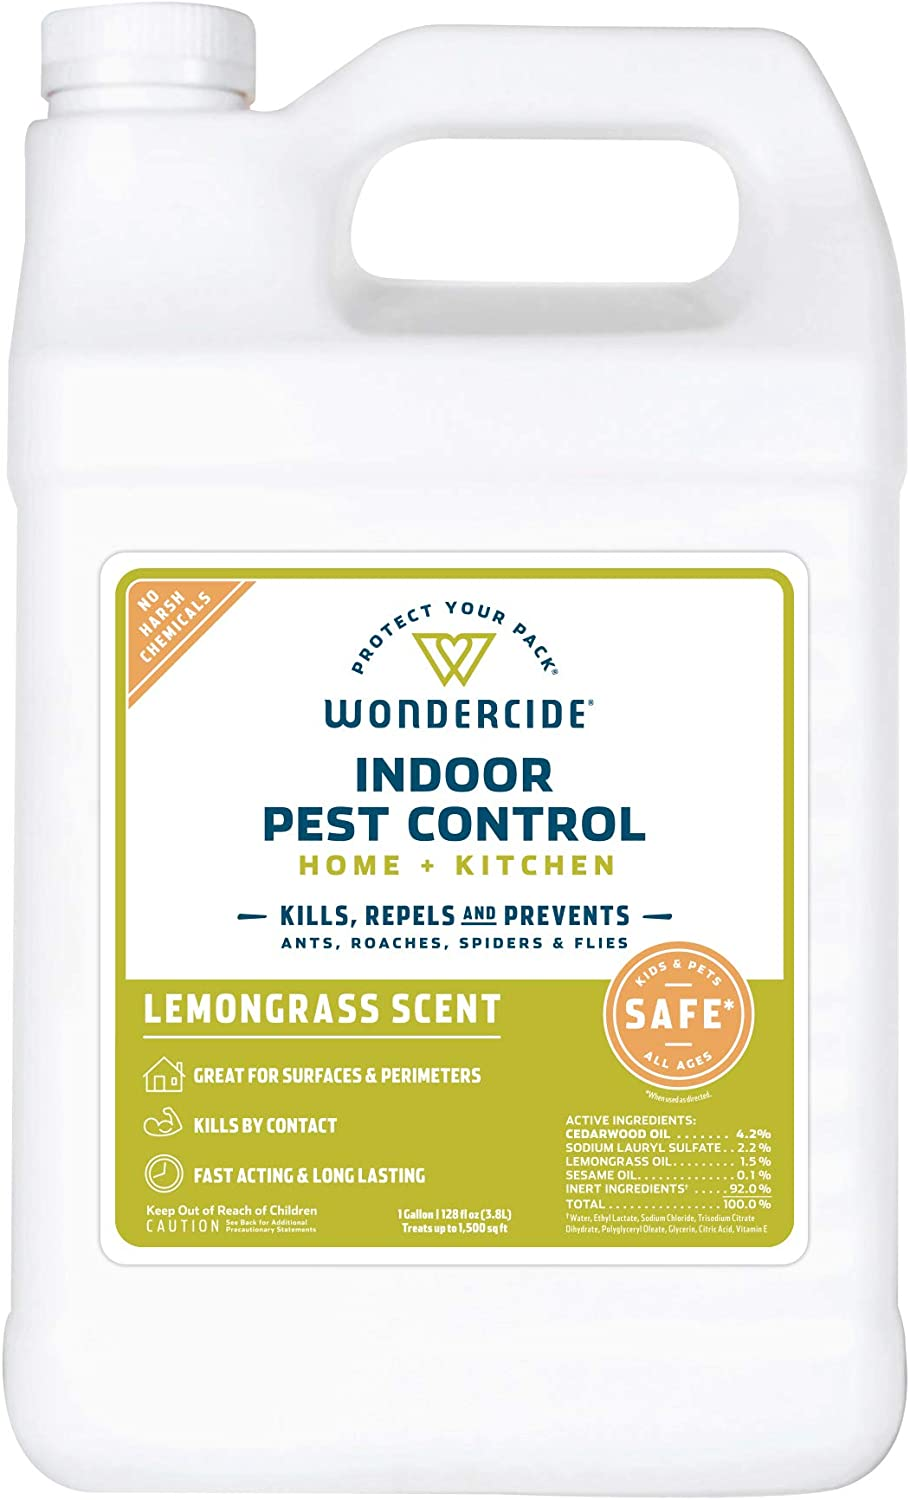 Wondercide Natural Products - Indoor Pest Control Spray for Home and Kitchen - Fly, Ant, Spider, Roach, Flea, Bug Killer and Insect Repellent - Eco-Friendly, Pet and Family Safe — 128 oz Lemongrass